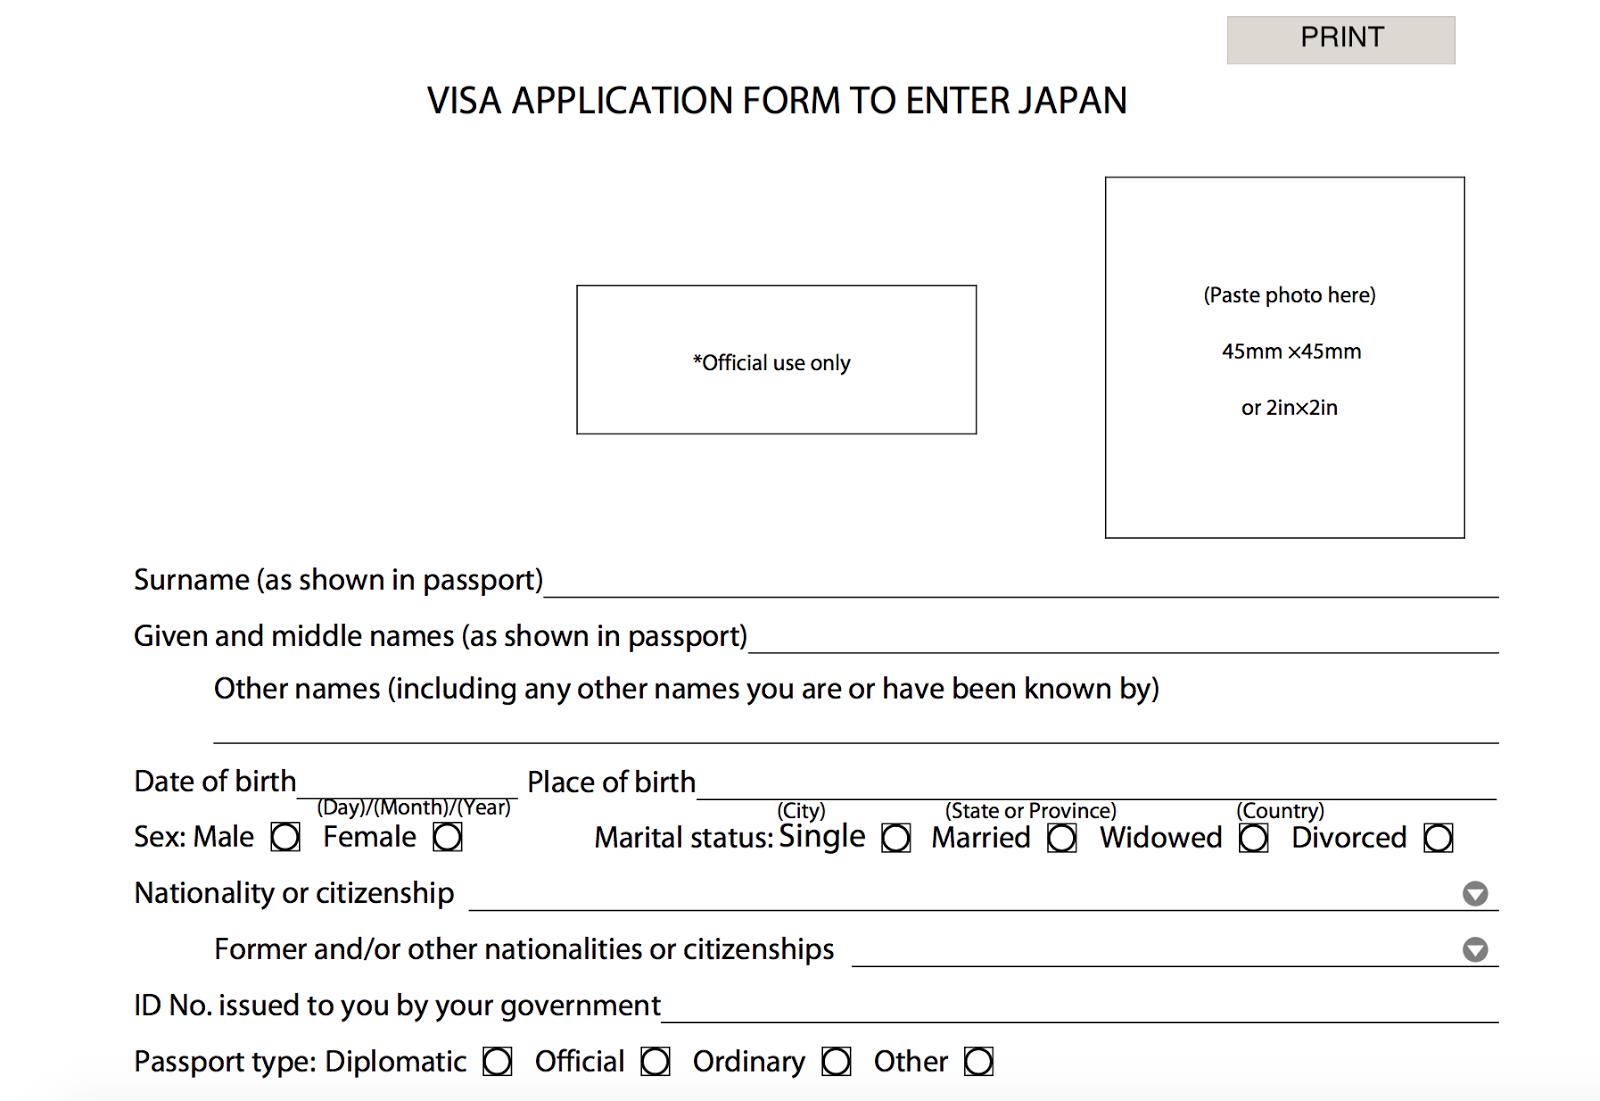 How To Apply For A Japanese Tourist Visa Unemployed And No Guarantor